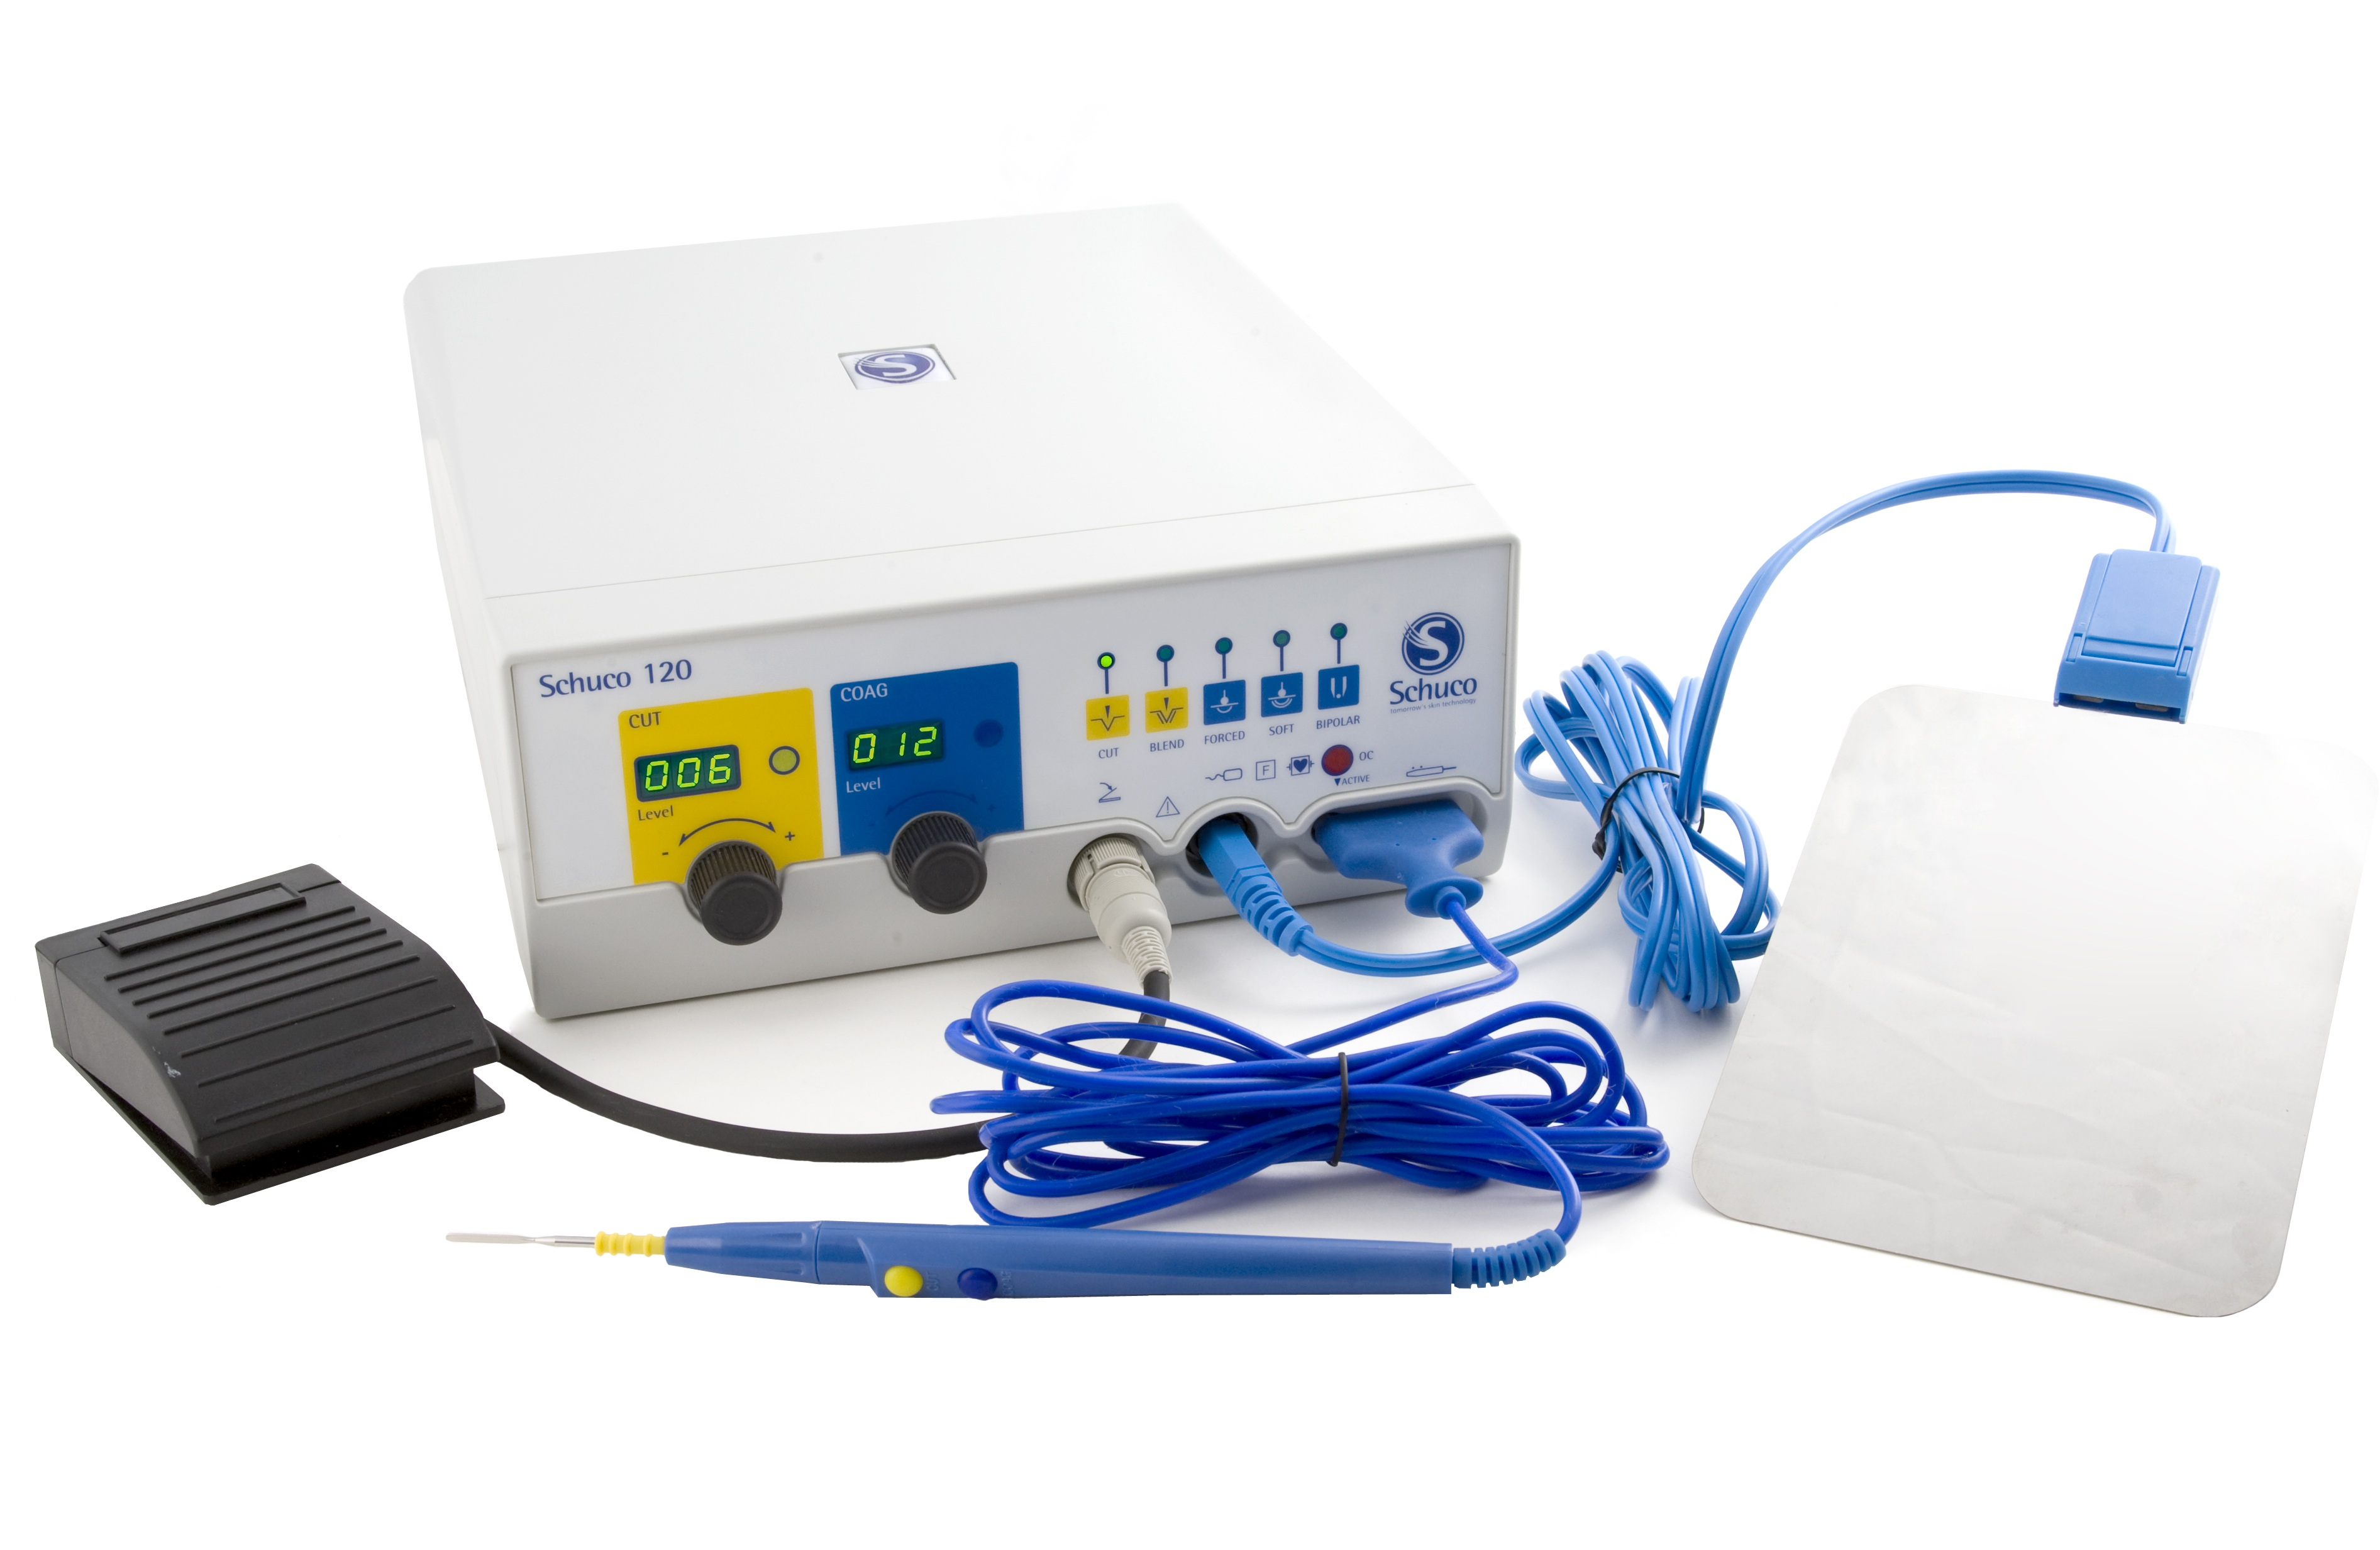 Ac Unit Prices >> Cheap Electrosurgical Cautery Units | Electrosurgical Units and other medical supplies from ...